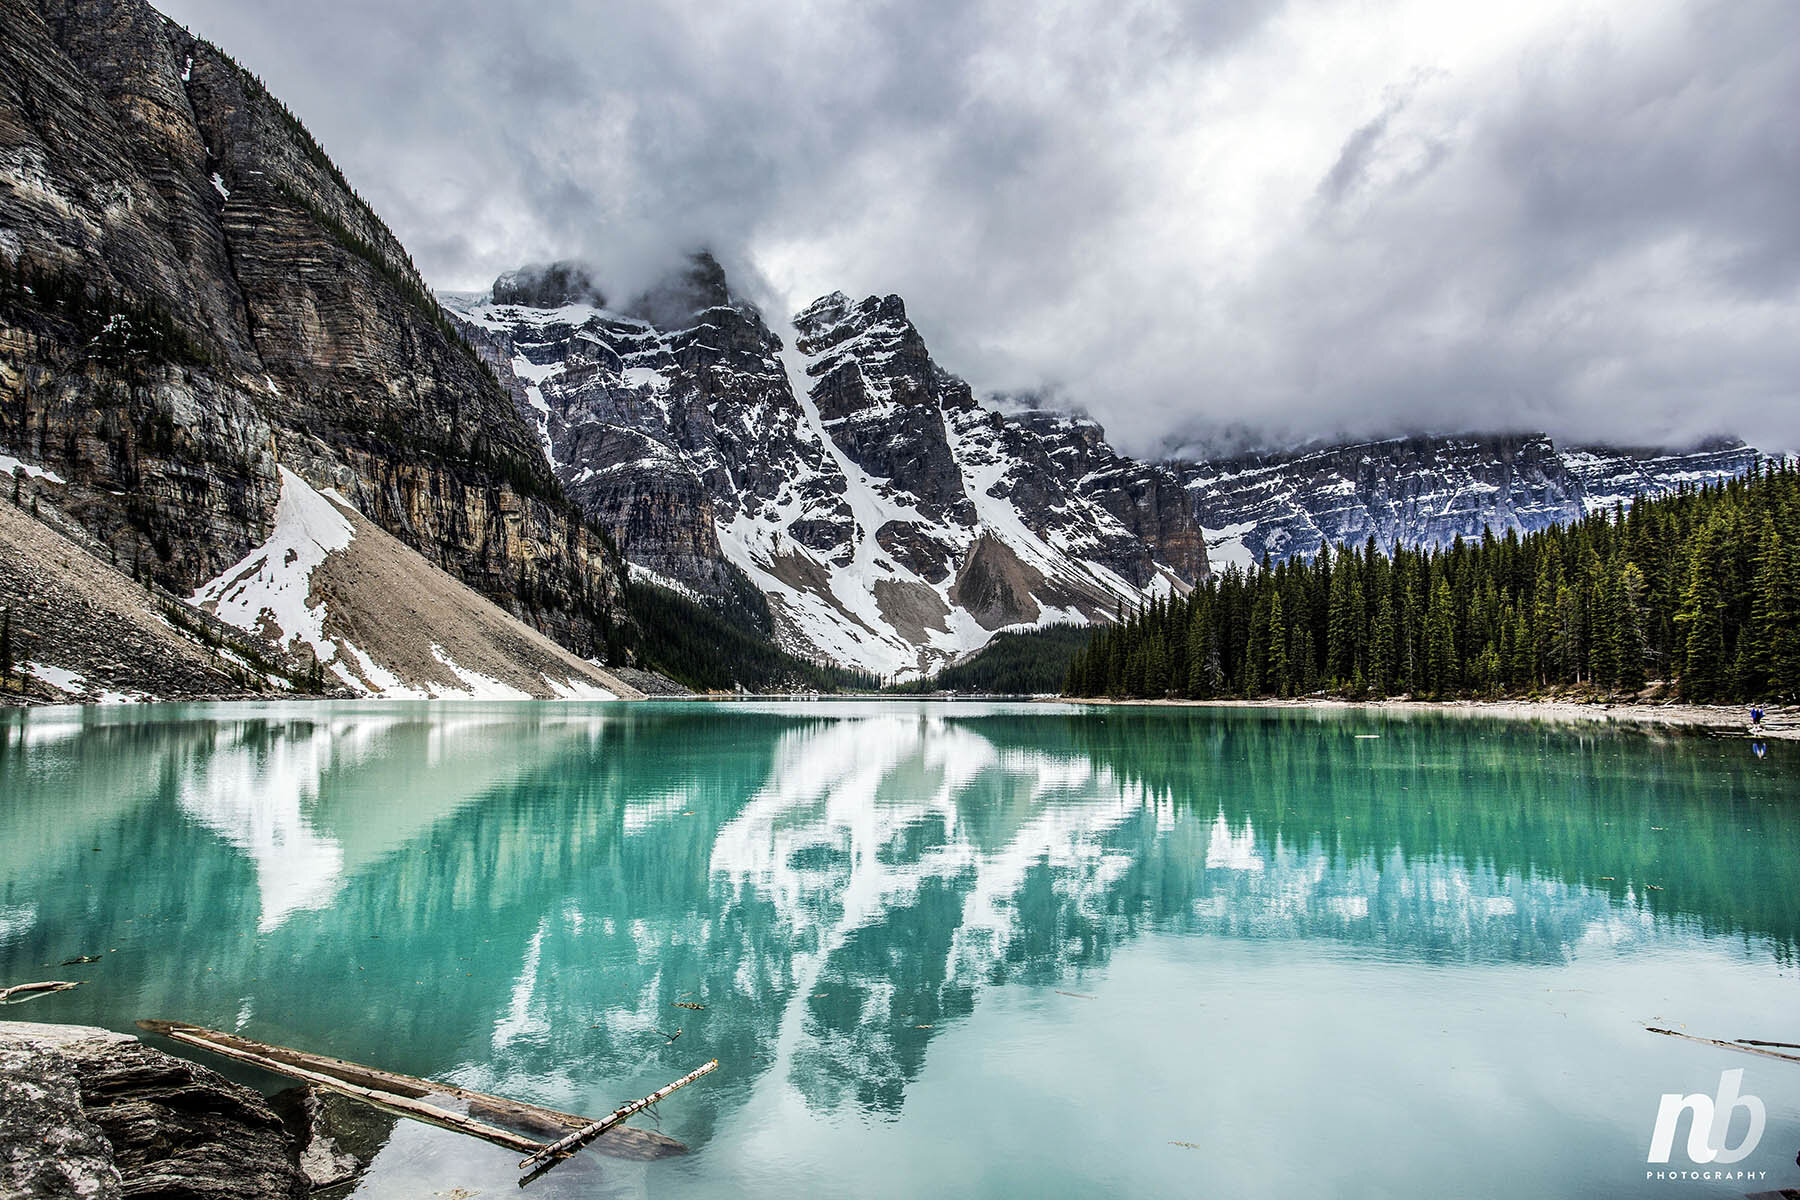 OFILA Moraine Lake Backdrop 10x6.5ft Canada Banff National Park Scenery British Columbia Canadian Rockies Pristine Mountain Nature Landscape Travel Photos Background Adult Adventure Party Shoots Props